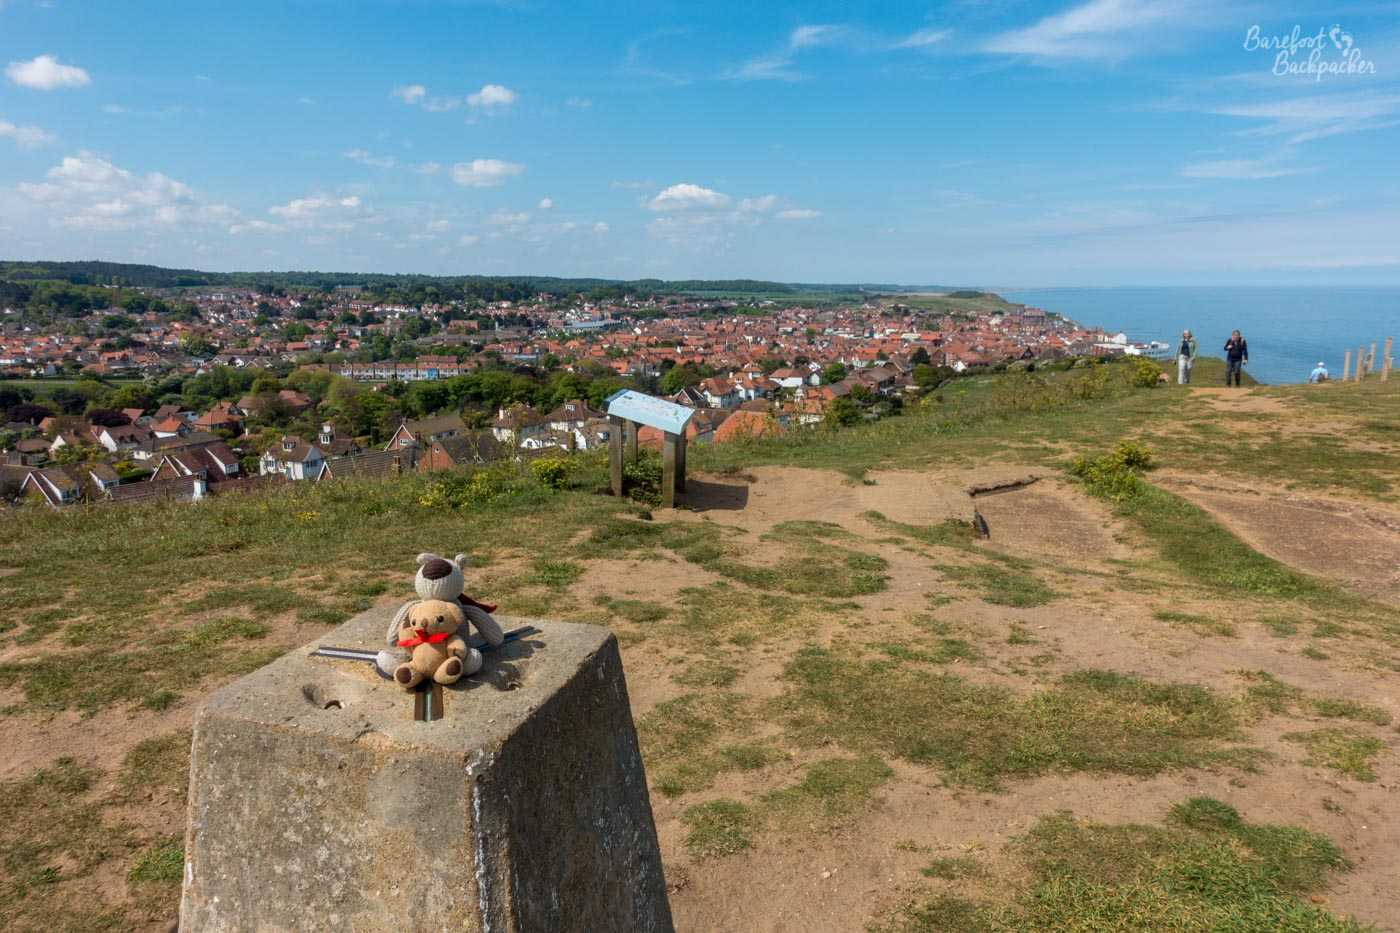 Two small soft toys sit on top of a trig point. Behind them, a hilltop drops away to reveal the vista of a town, mainly housing. To the right, the sea is visible as it merges with the sky.